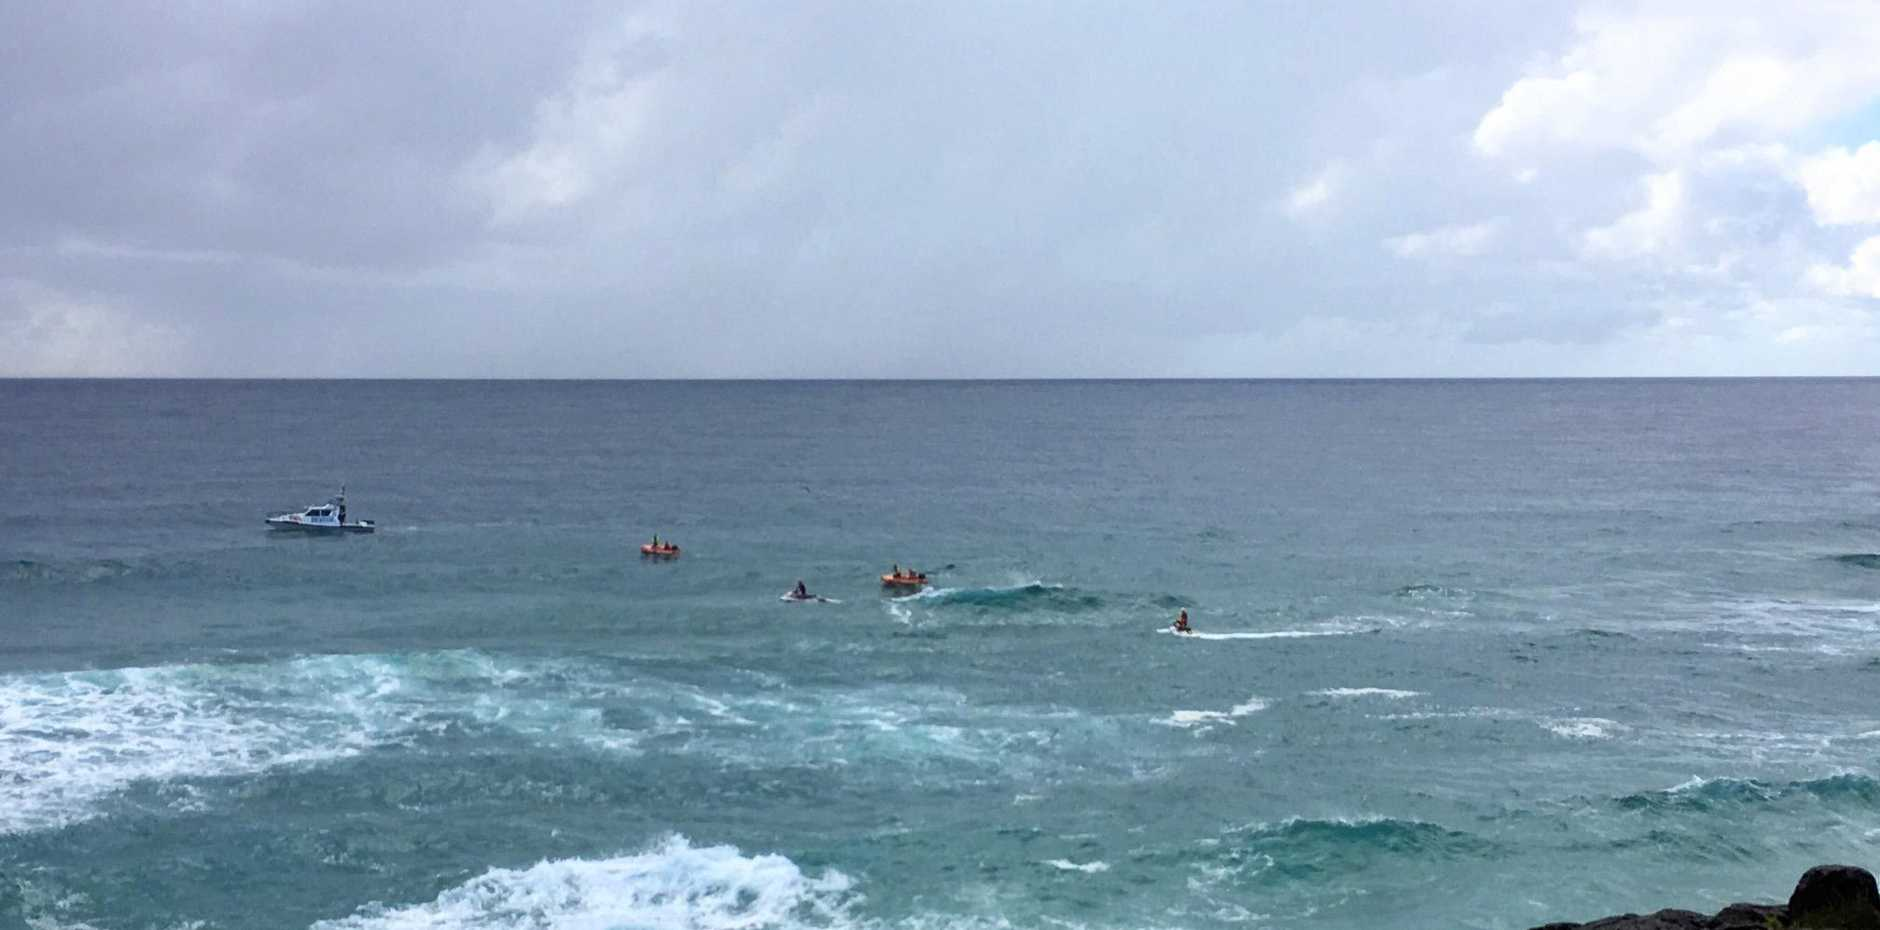 The search for the body of a missing tourist believed to have drowned off Fingal Beach continues this morning in choppy conditions.